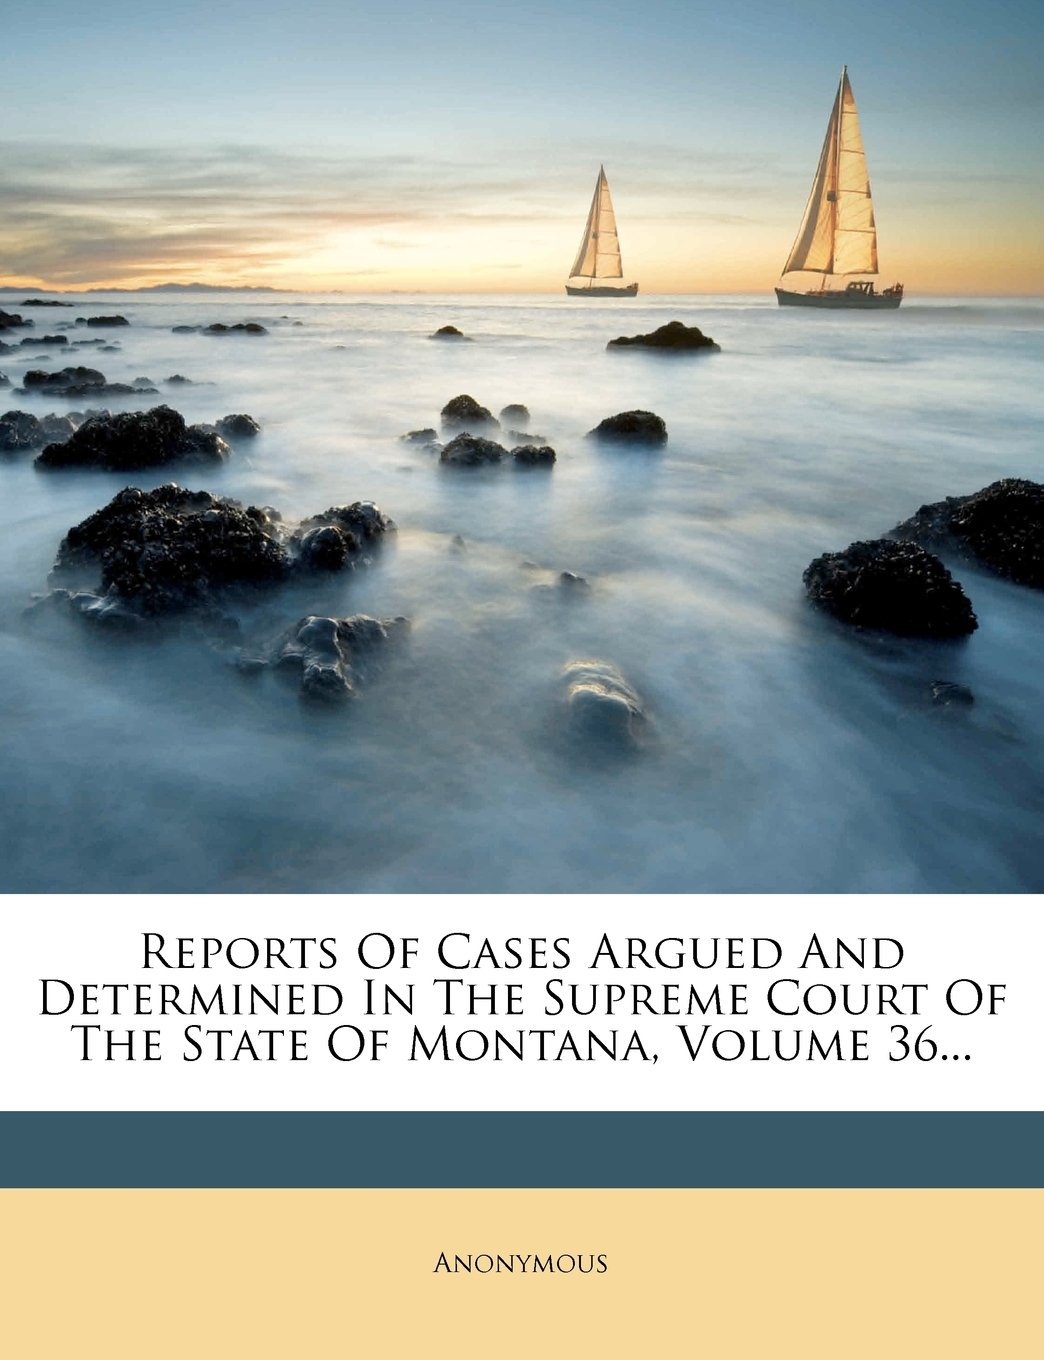 Reports Of Cases Argued And Determined In The Supreme Court Of The State Of Montana, Volume 36... pdf